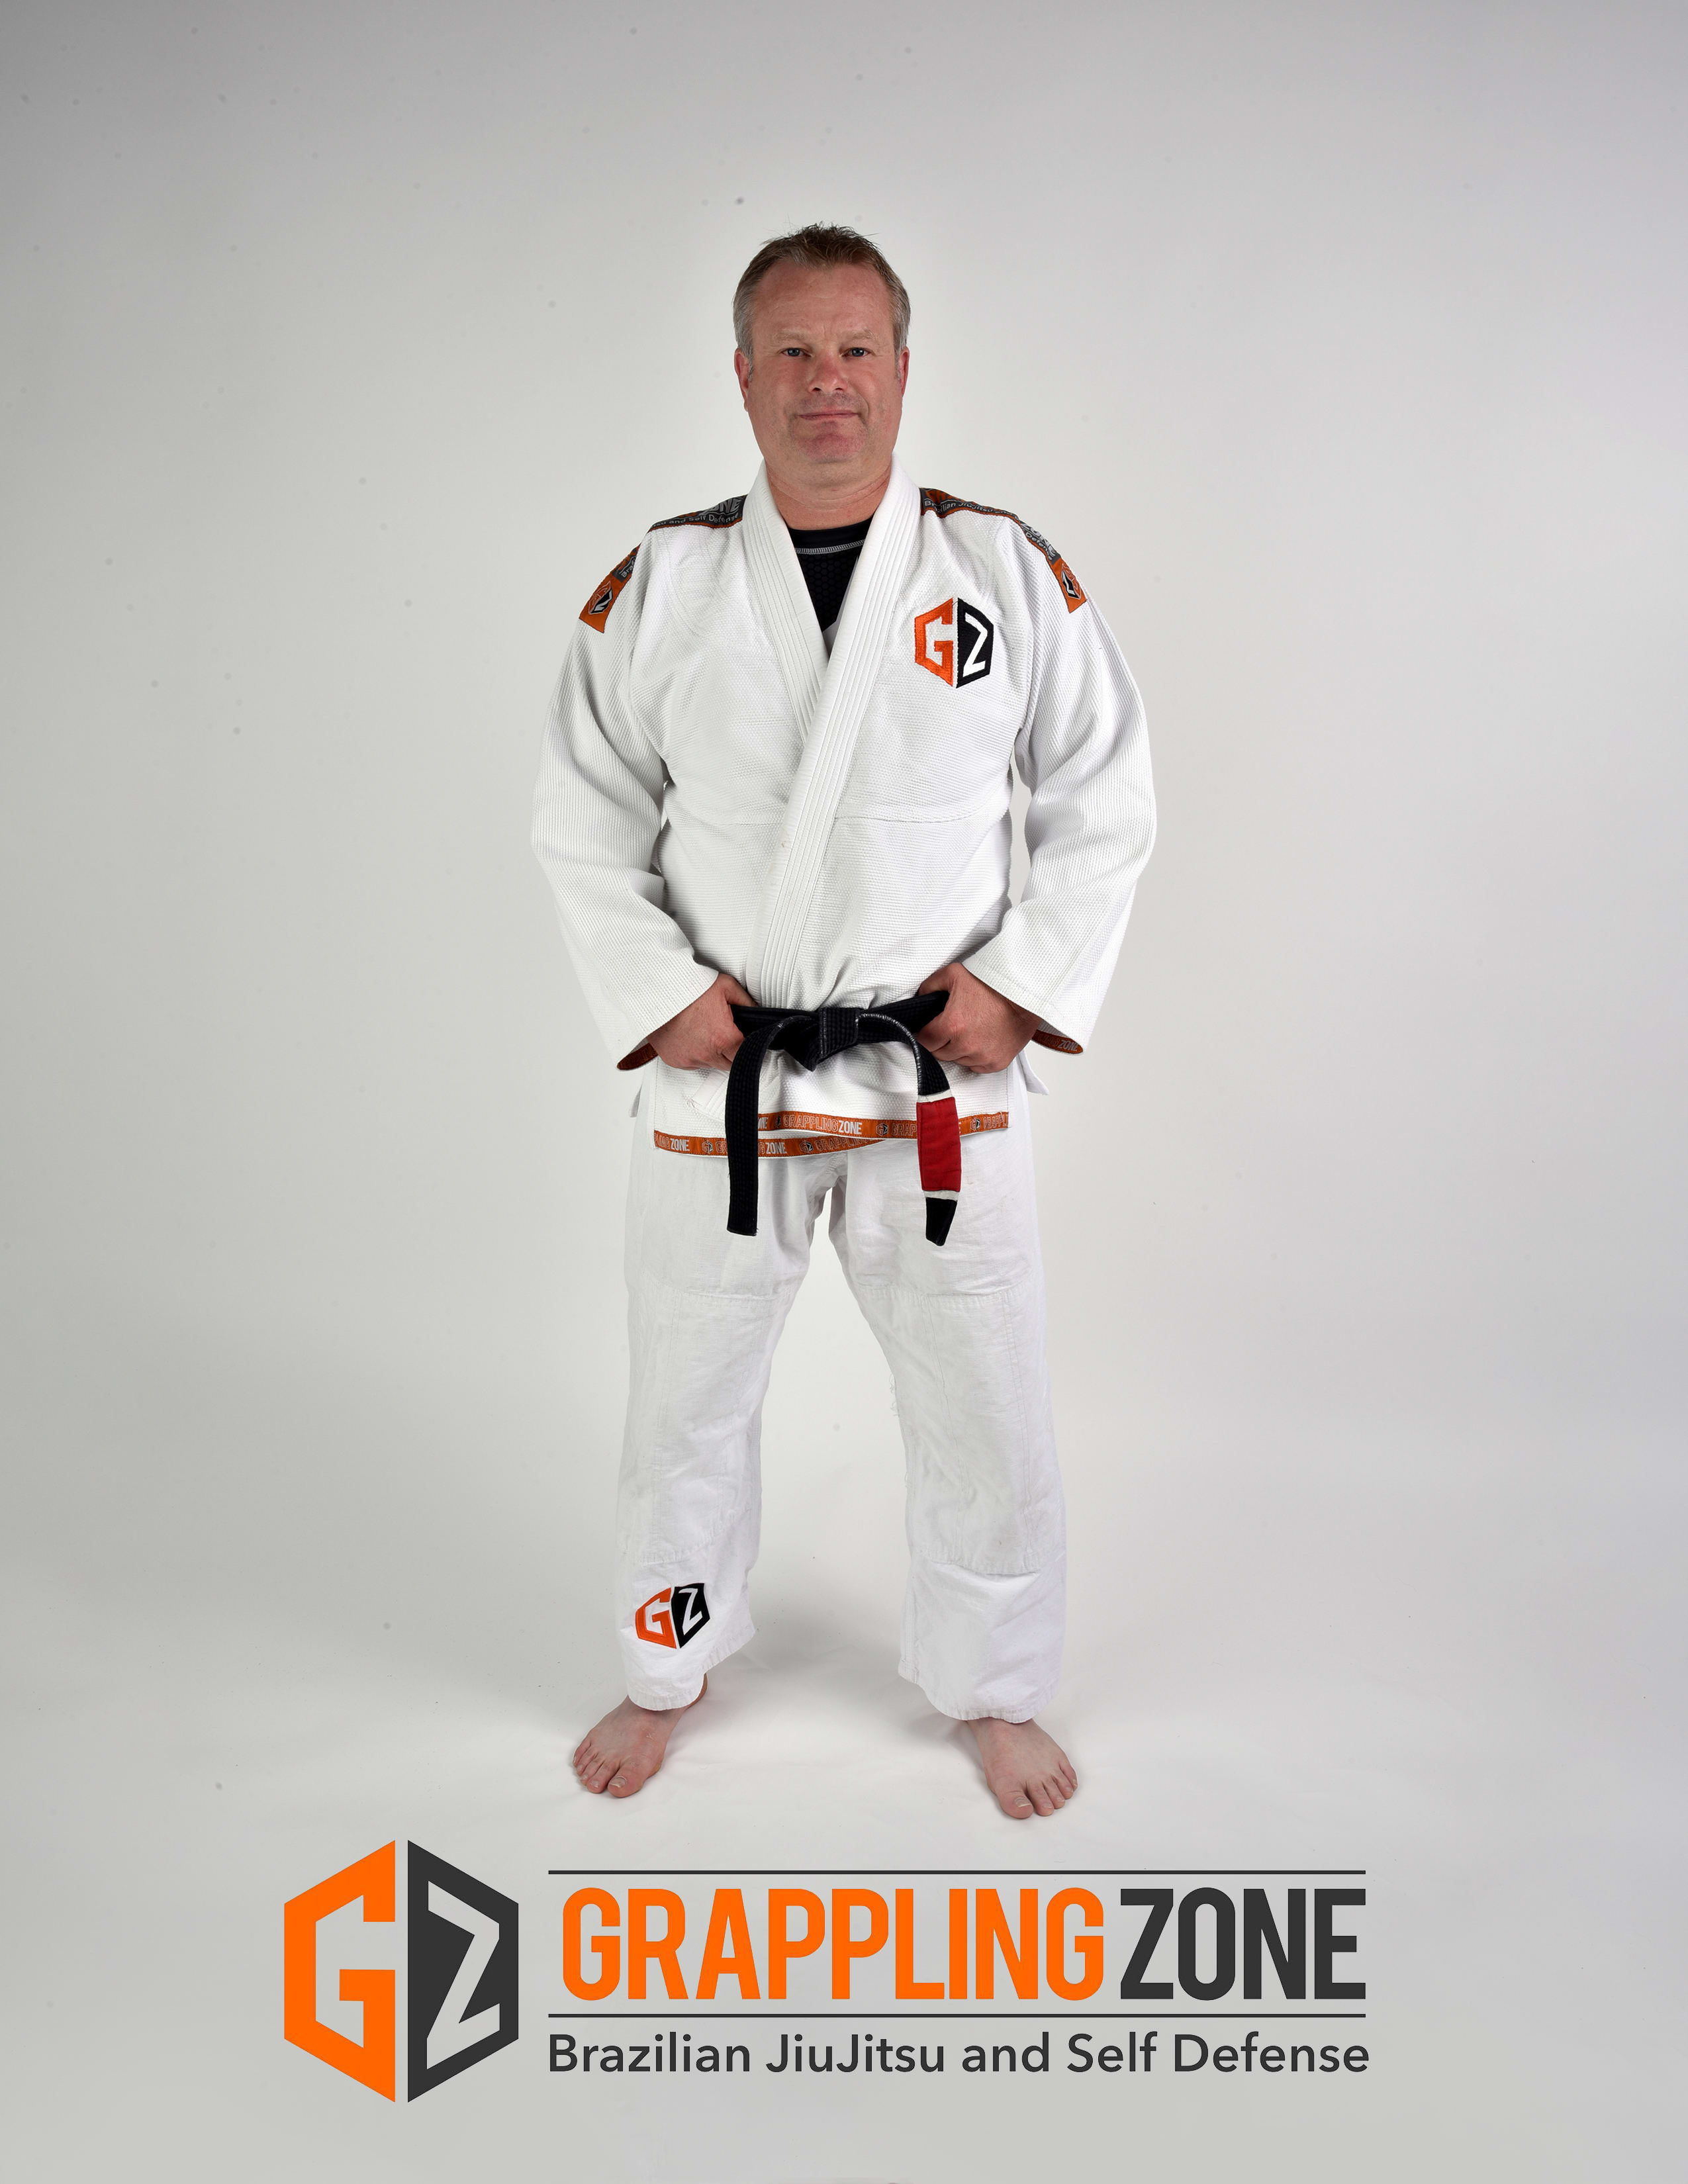 James Wadley in Southeast Houston - Grappling Zone